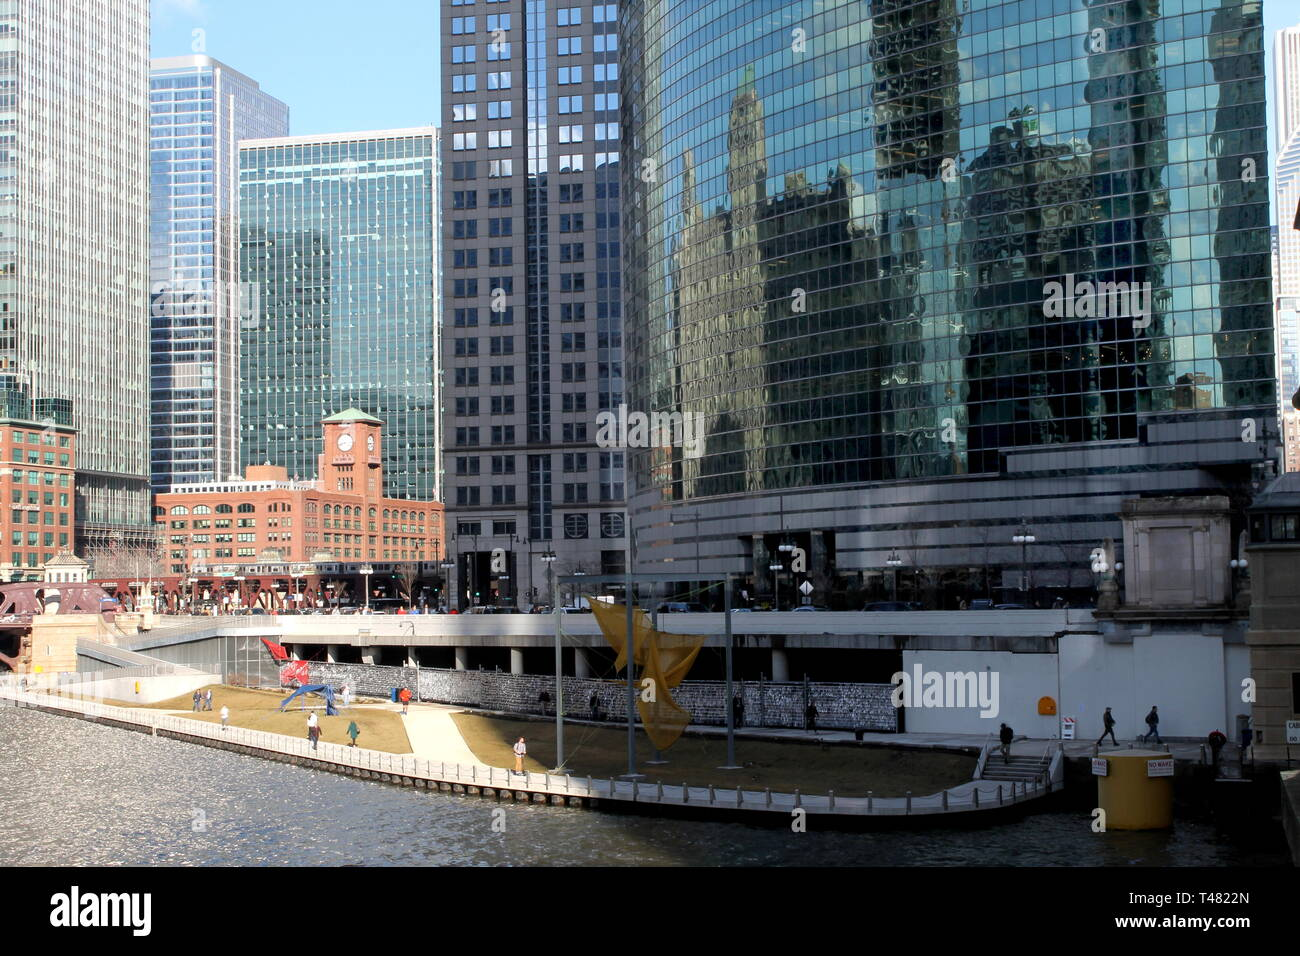 The Chicago Riverwalk, 333 West Wacker, the Chicago River, and the Reid, Murdoch and Company building - Stock Image